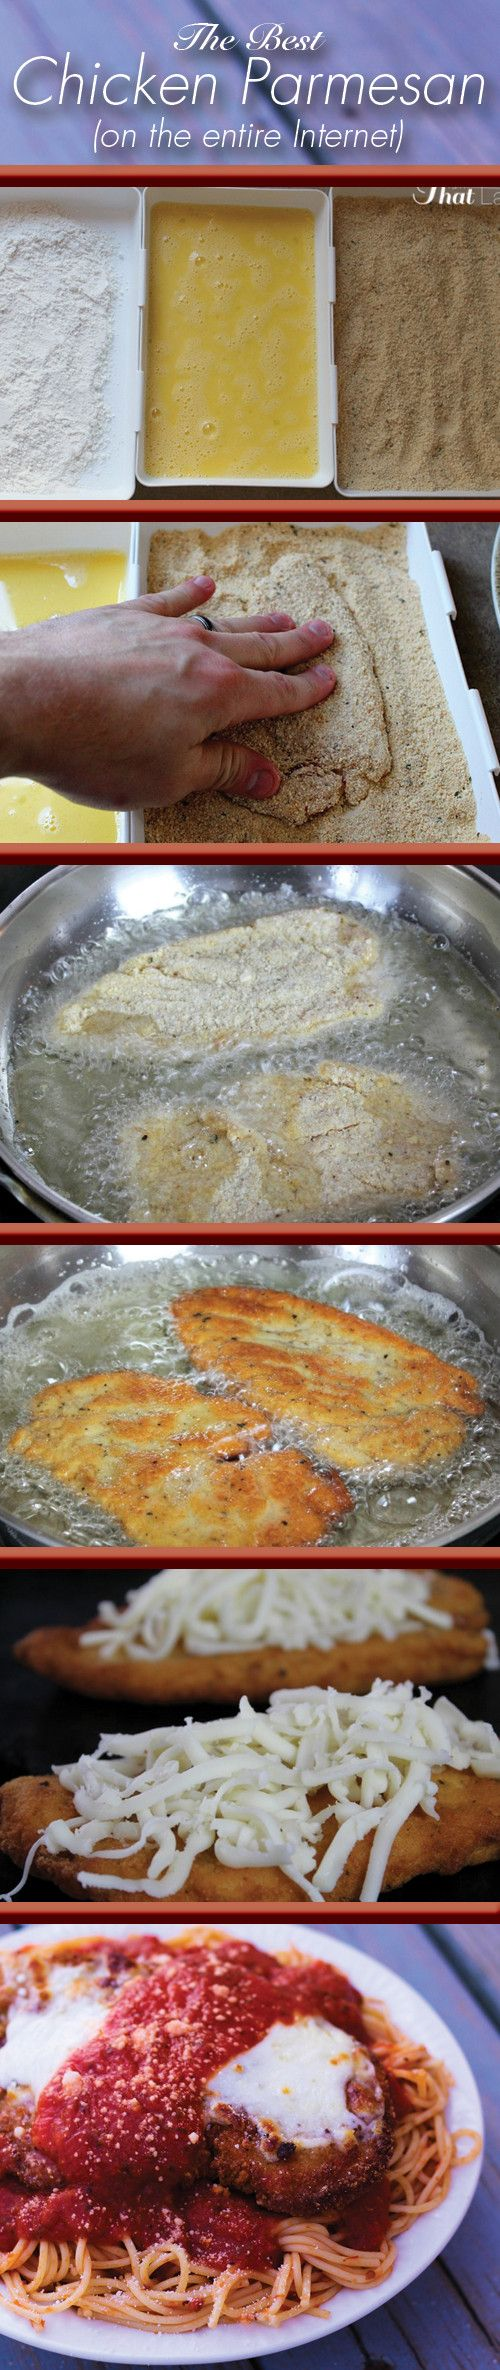 This is the best Restaurant Quality Chicken Parmesan recipe EVER! It's been perfected over the course of 15 years - you will LOVE it!